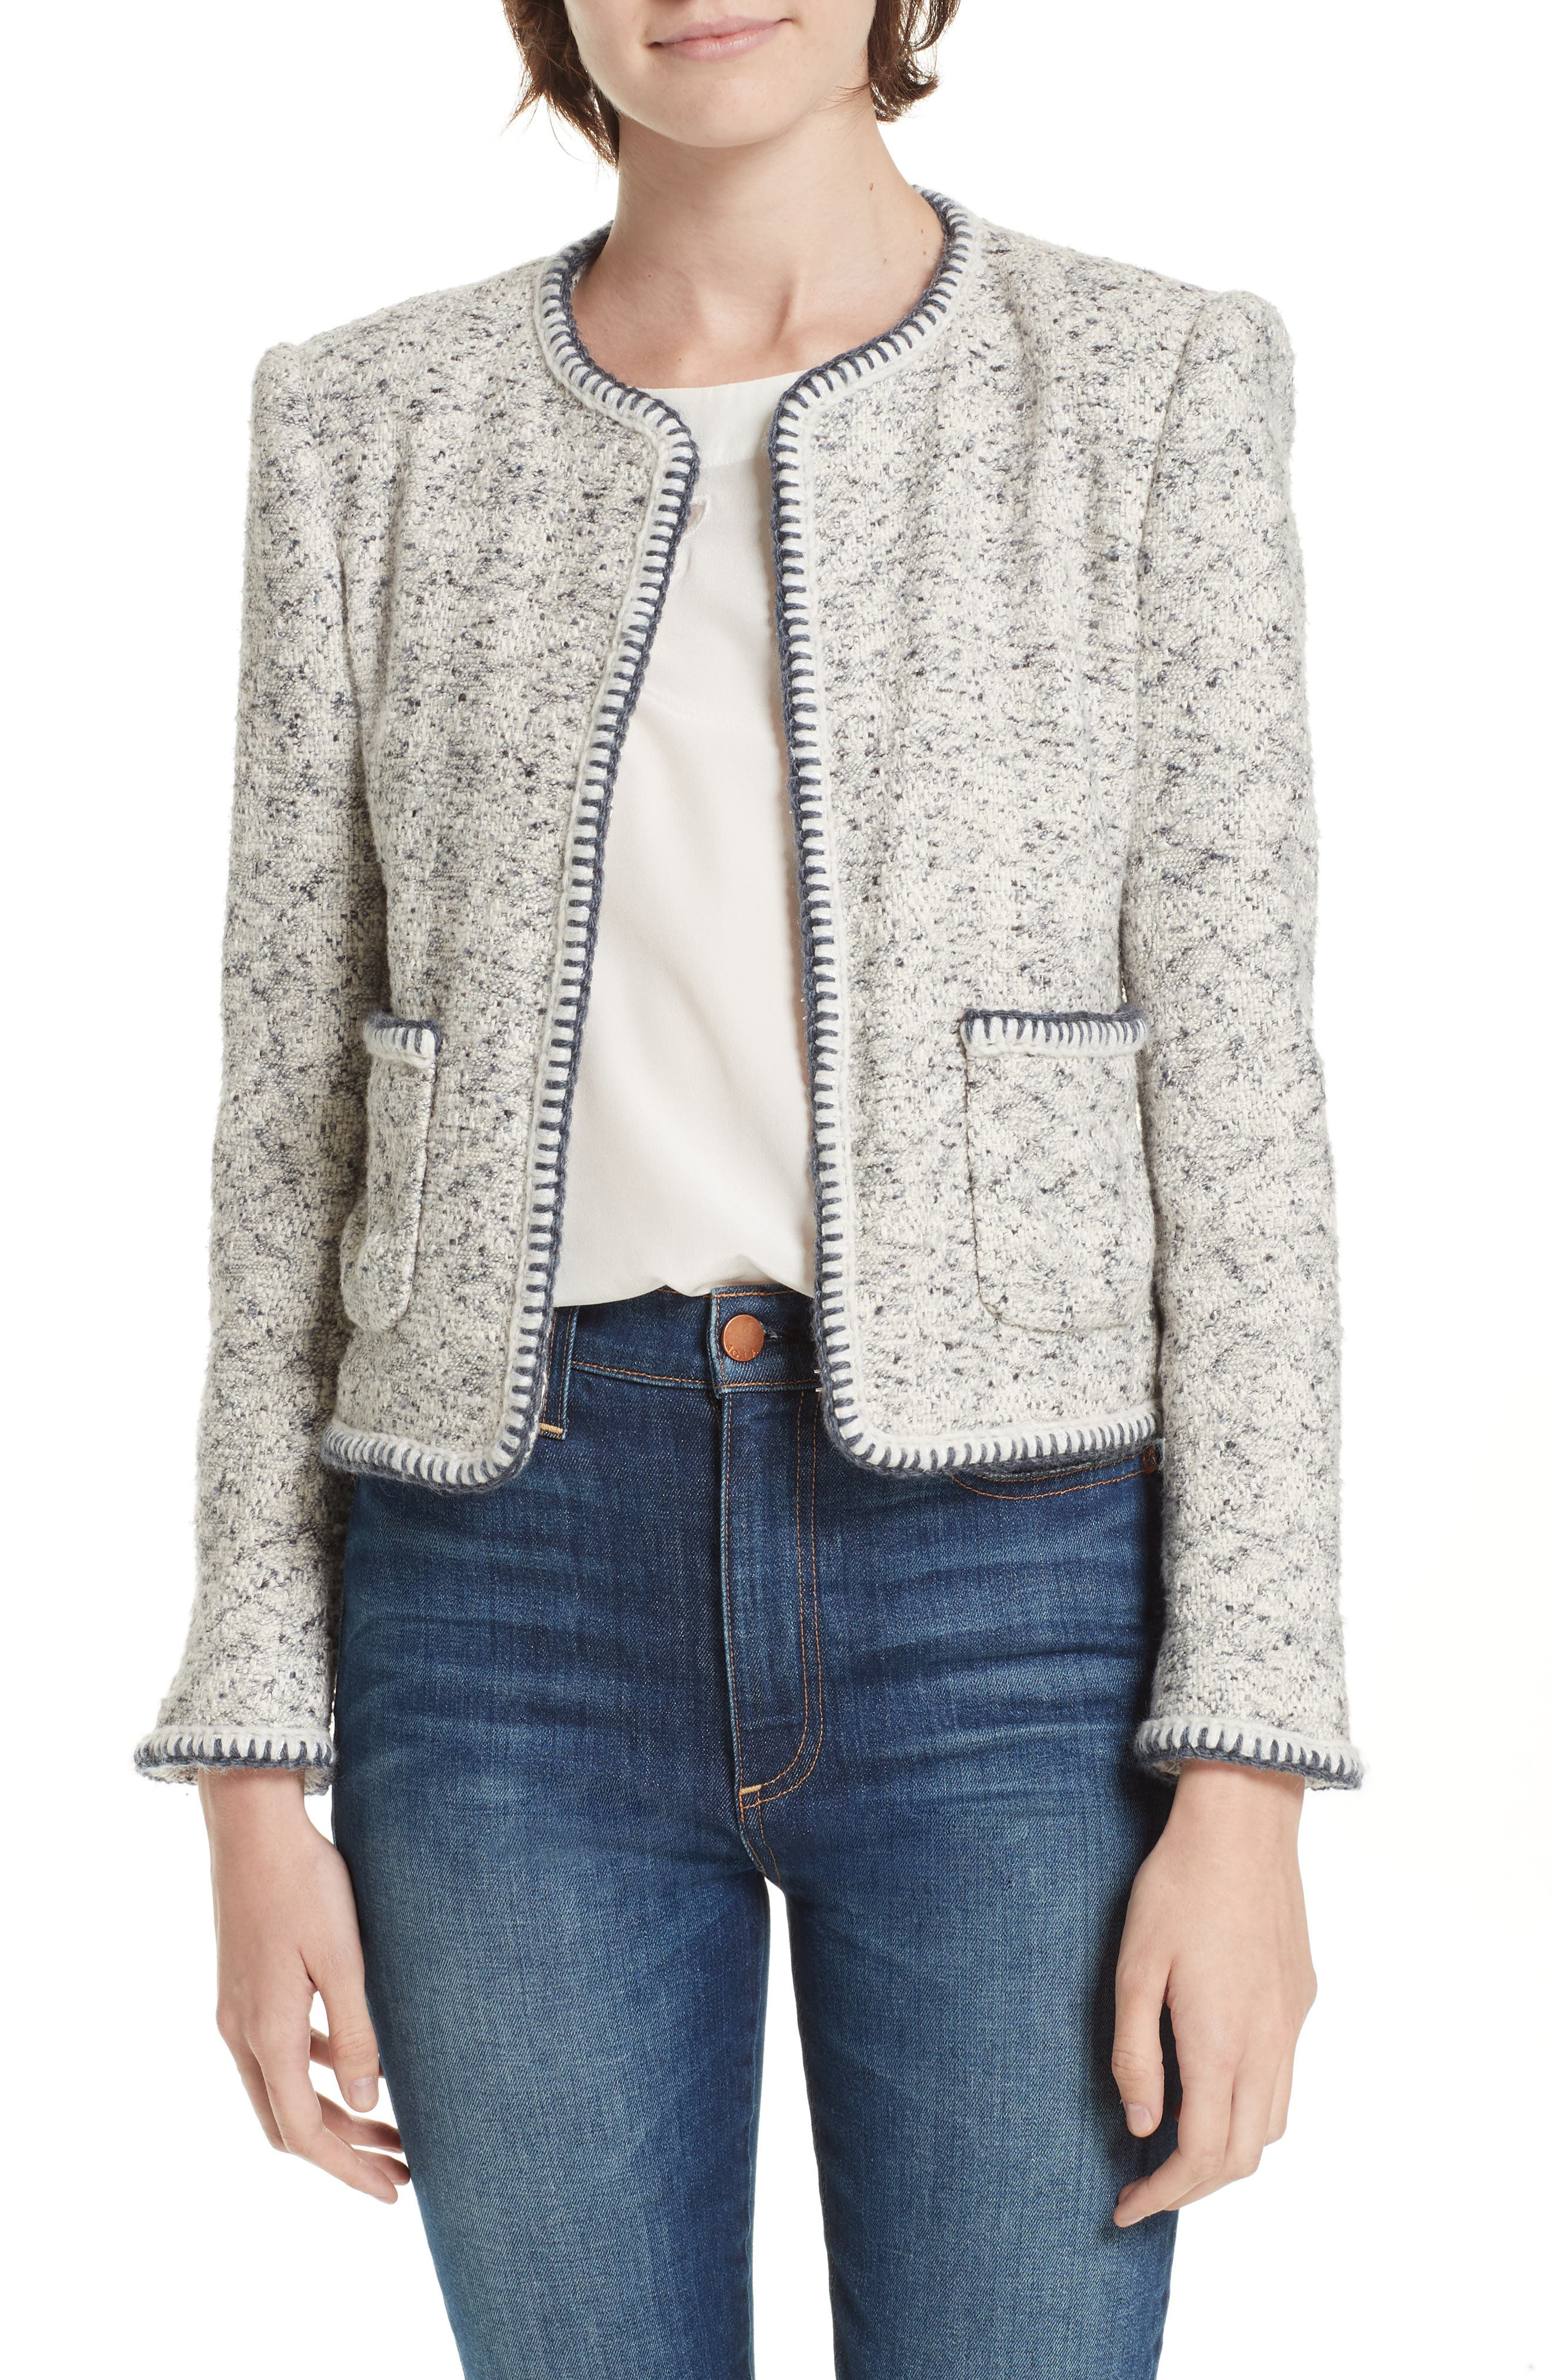 Speckled Tweed Jacket,                             Main thumbnail 1, color,                             054